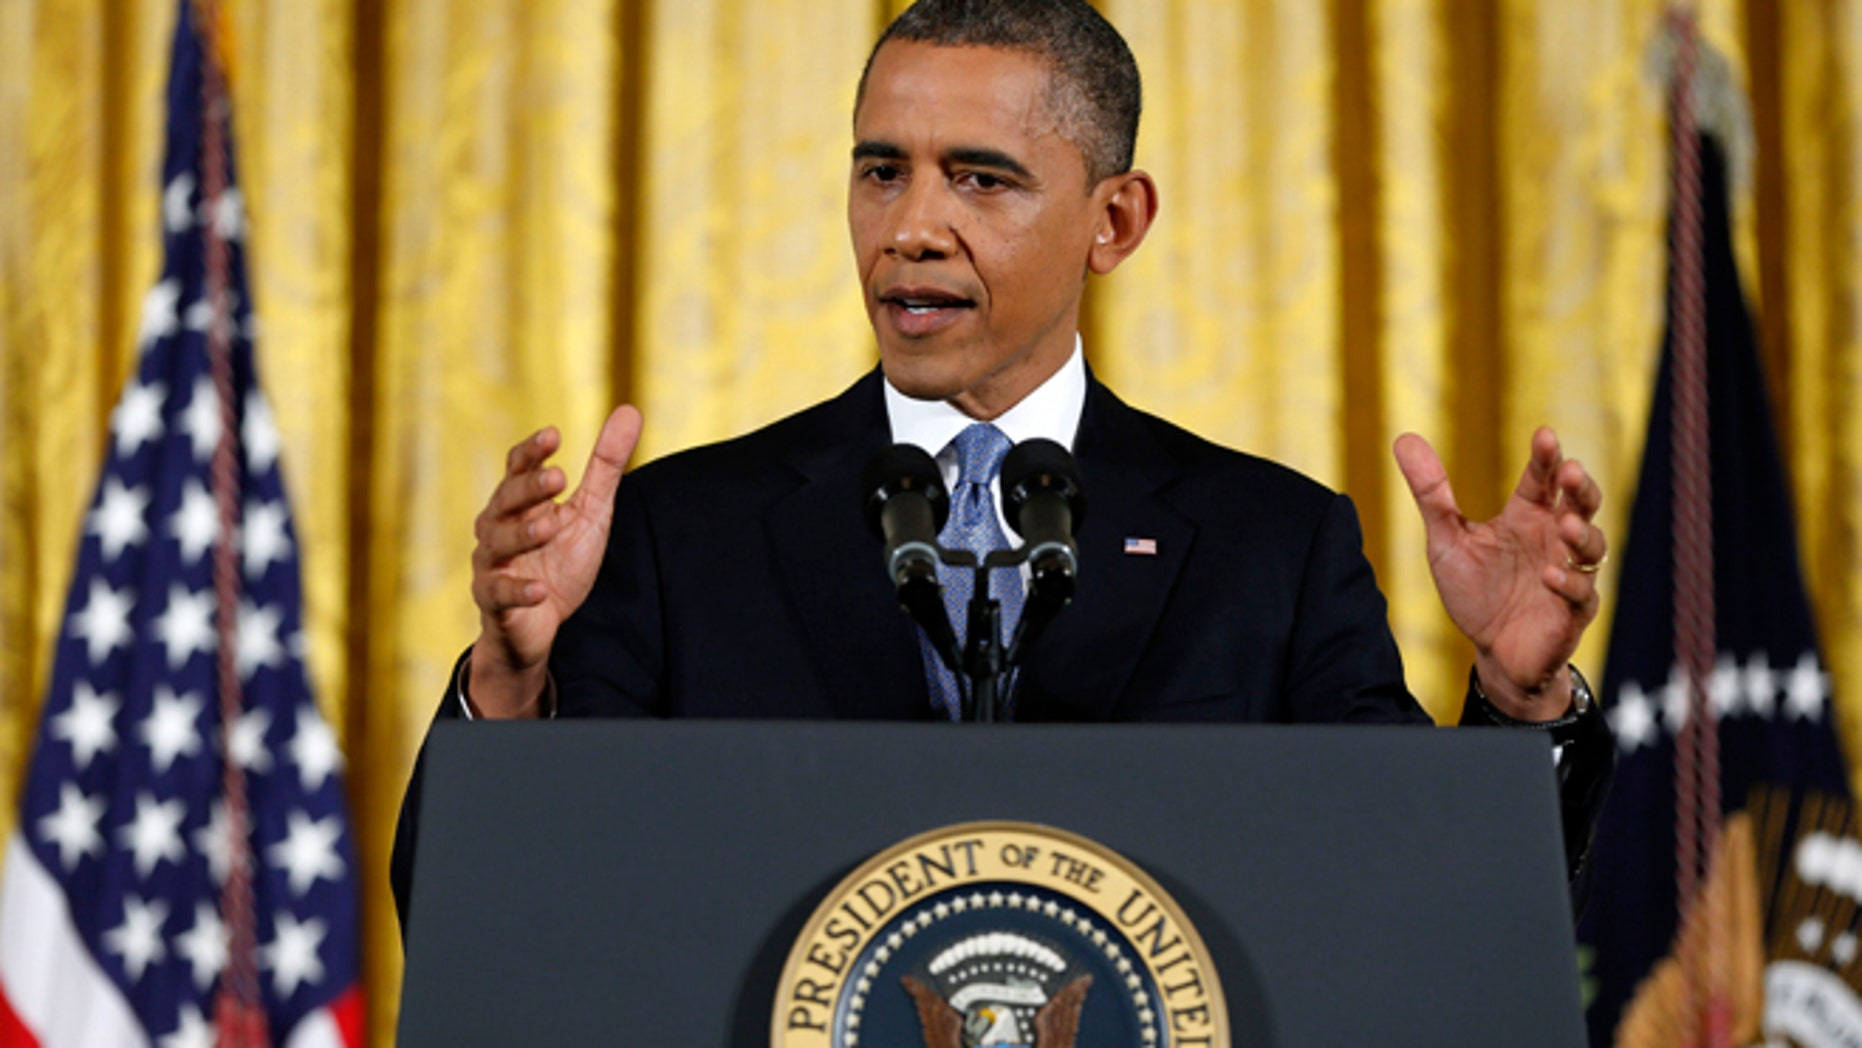 Nov. 14, 2012: President Barack Obama answers a question during a news conference in the East Room of the White House.